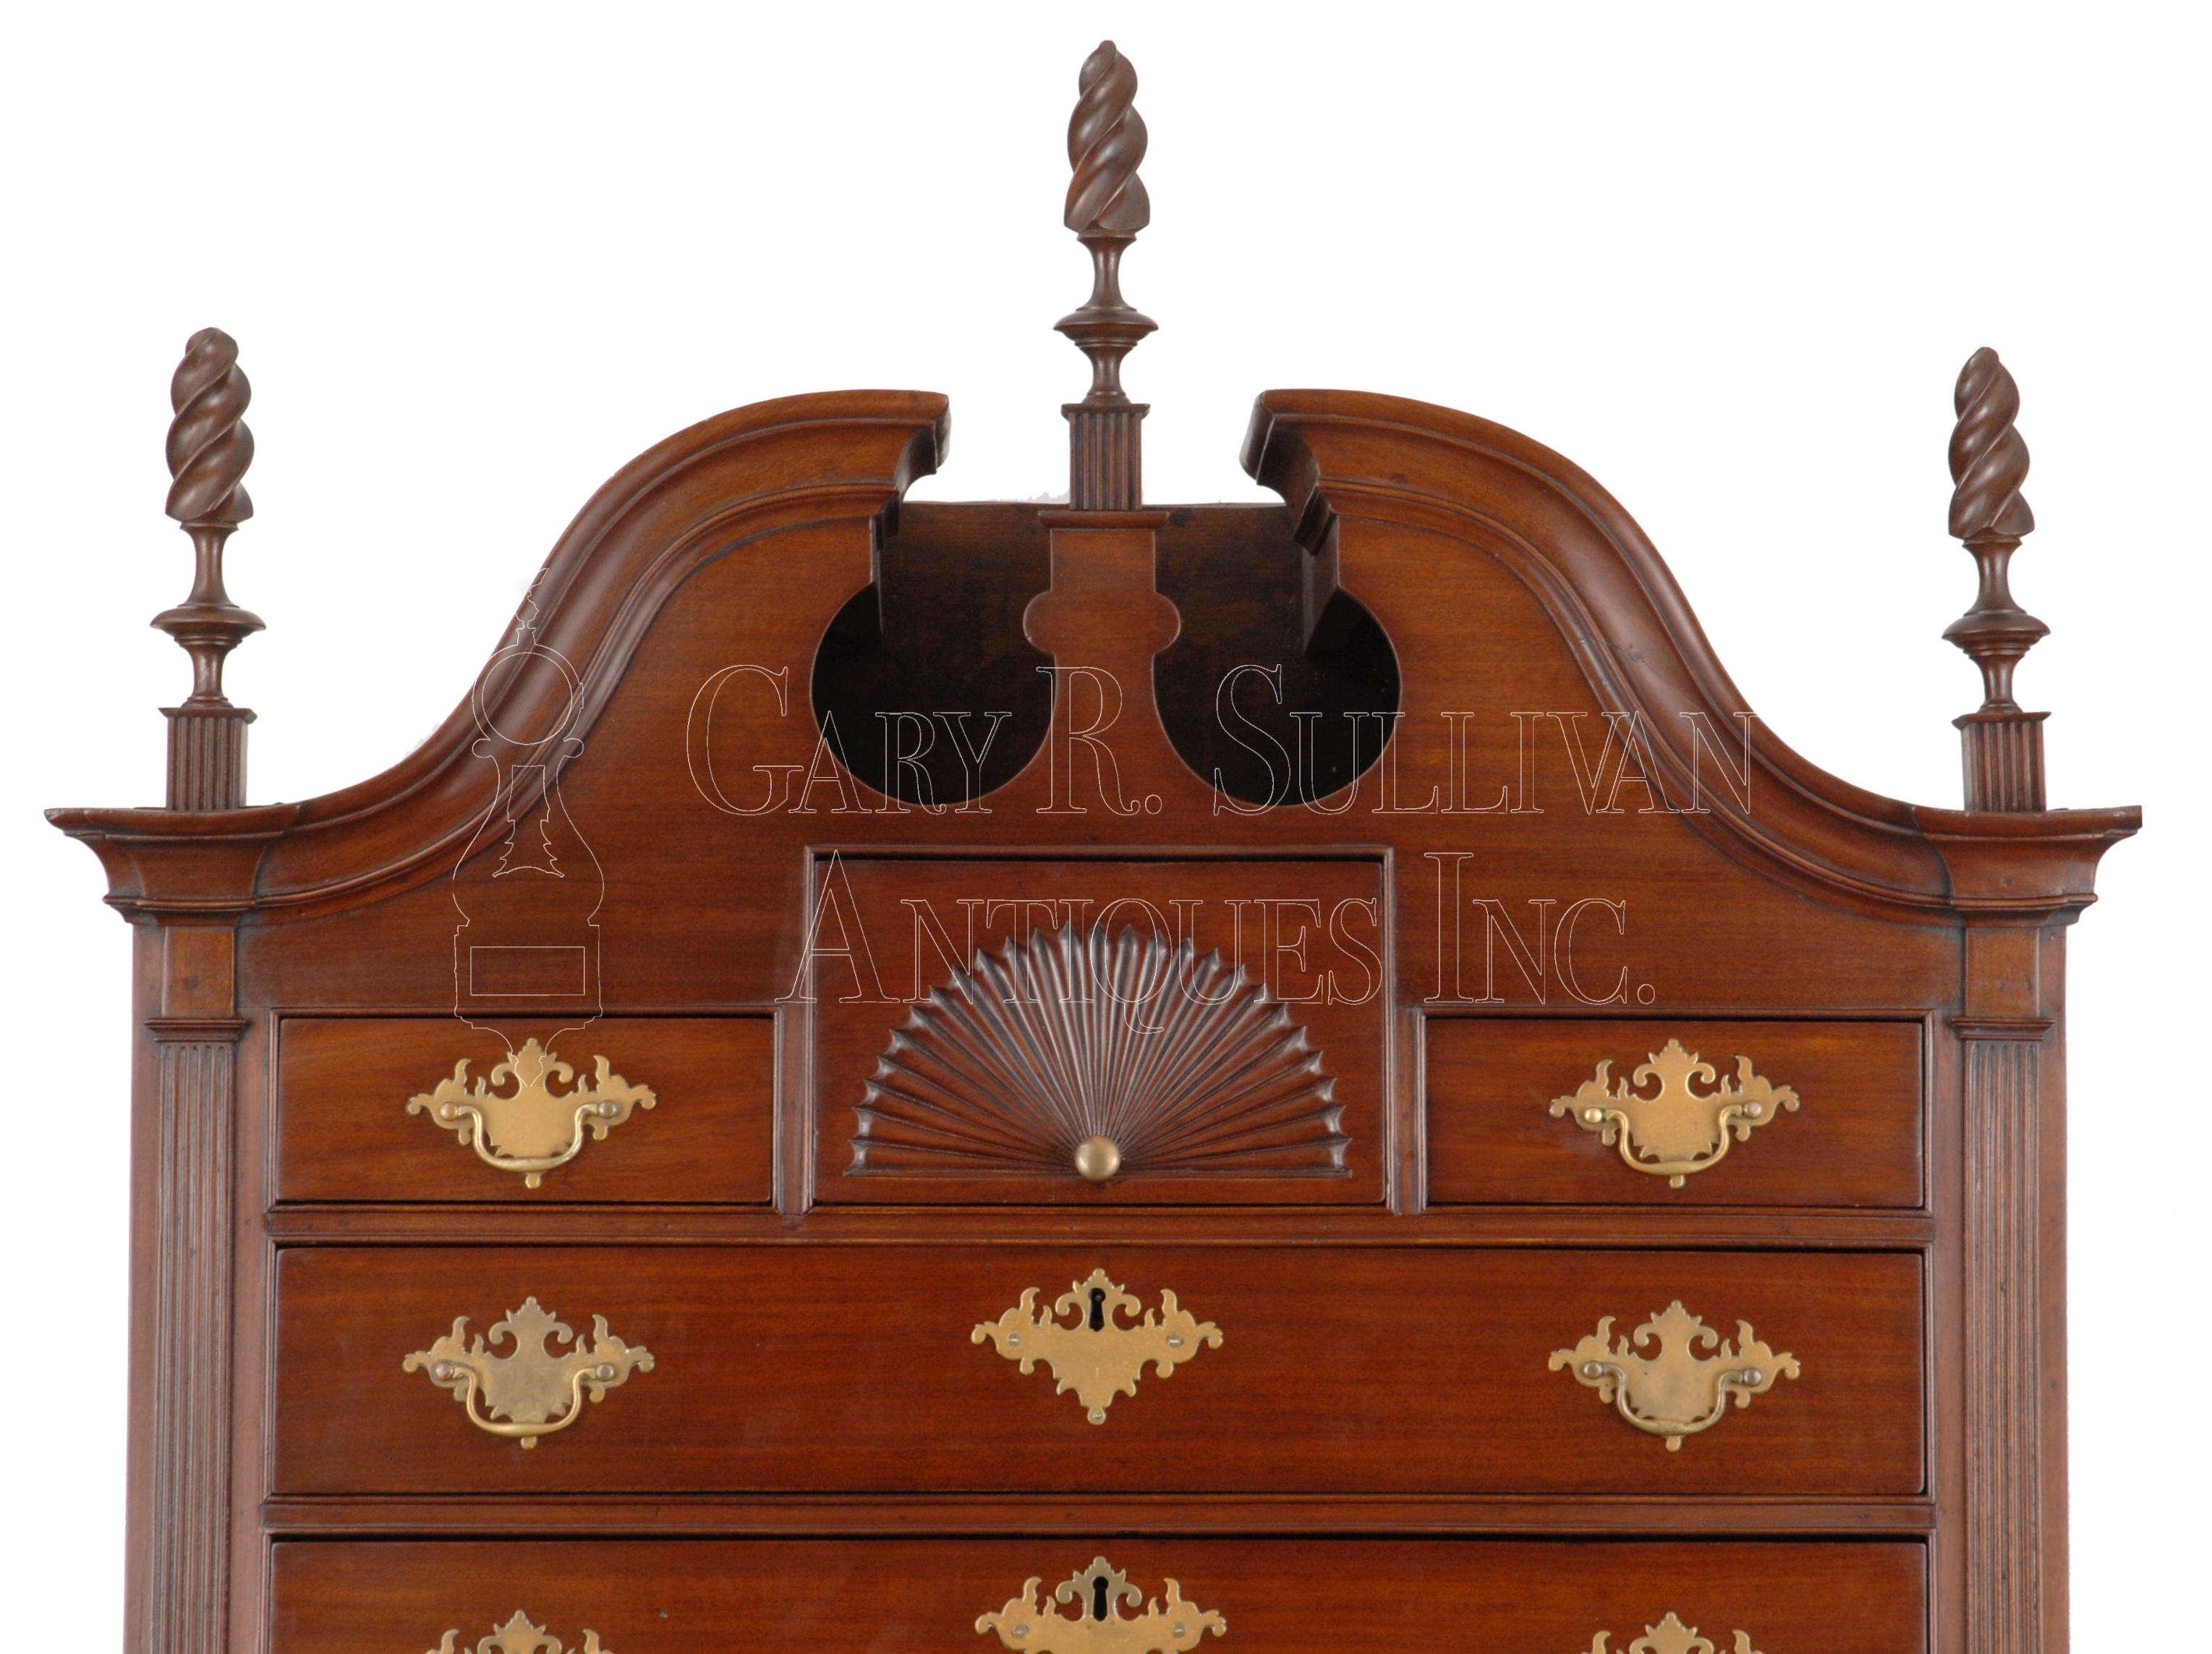 View in Browser. Chippendale Chest On Chest  Norwich  CT   Furniture 09025   Gary